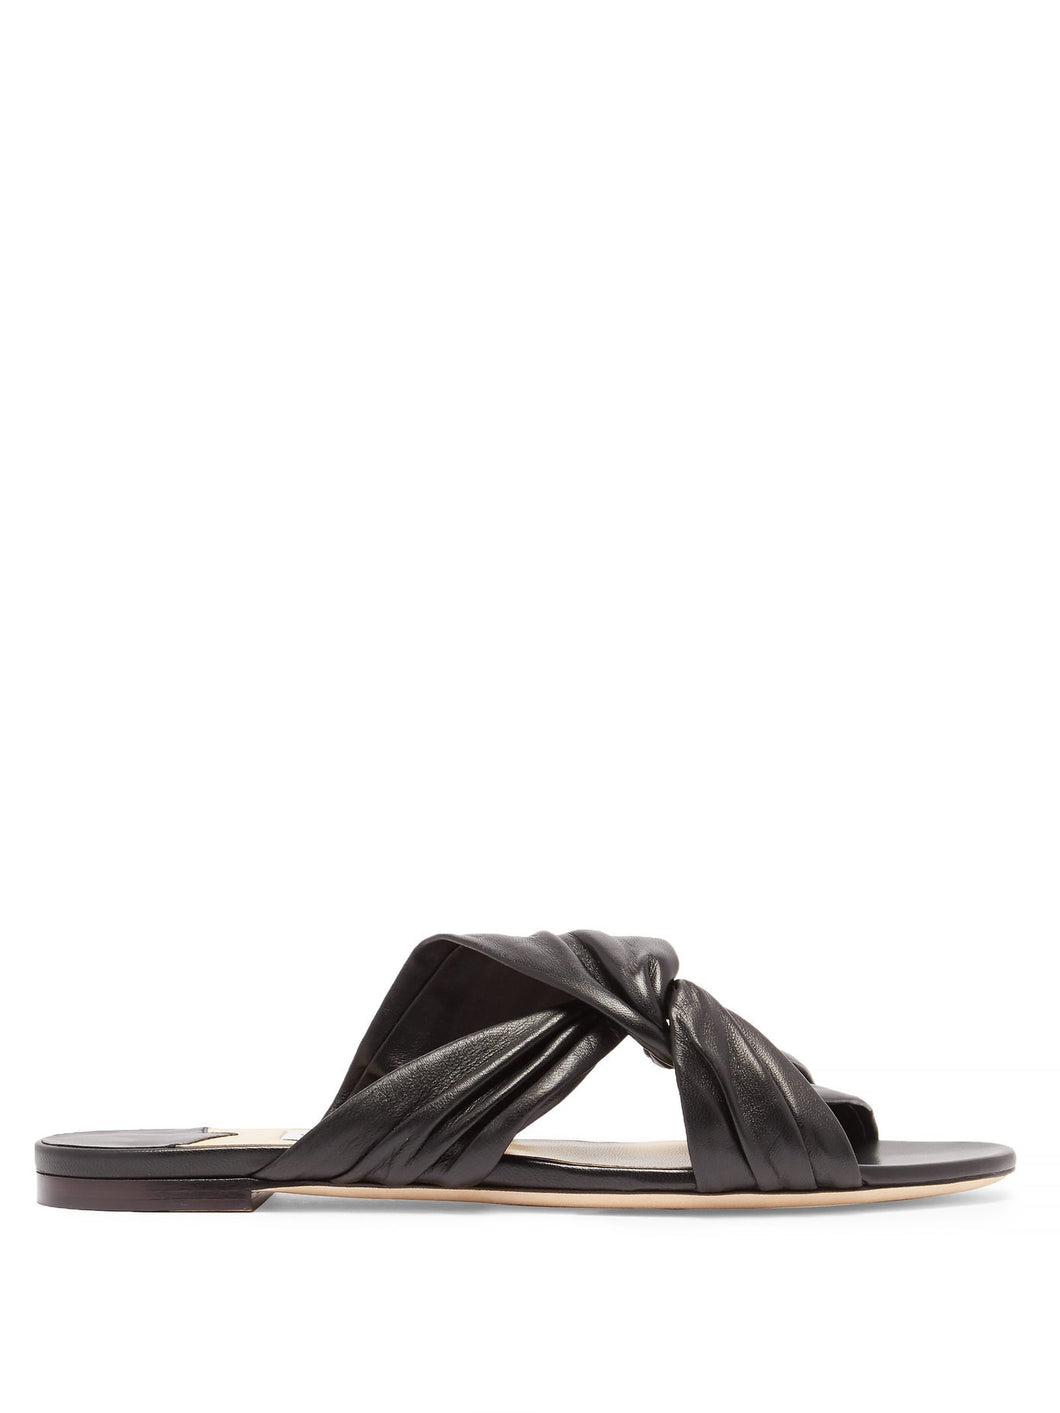 Lela leather slides